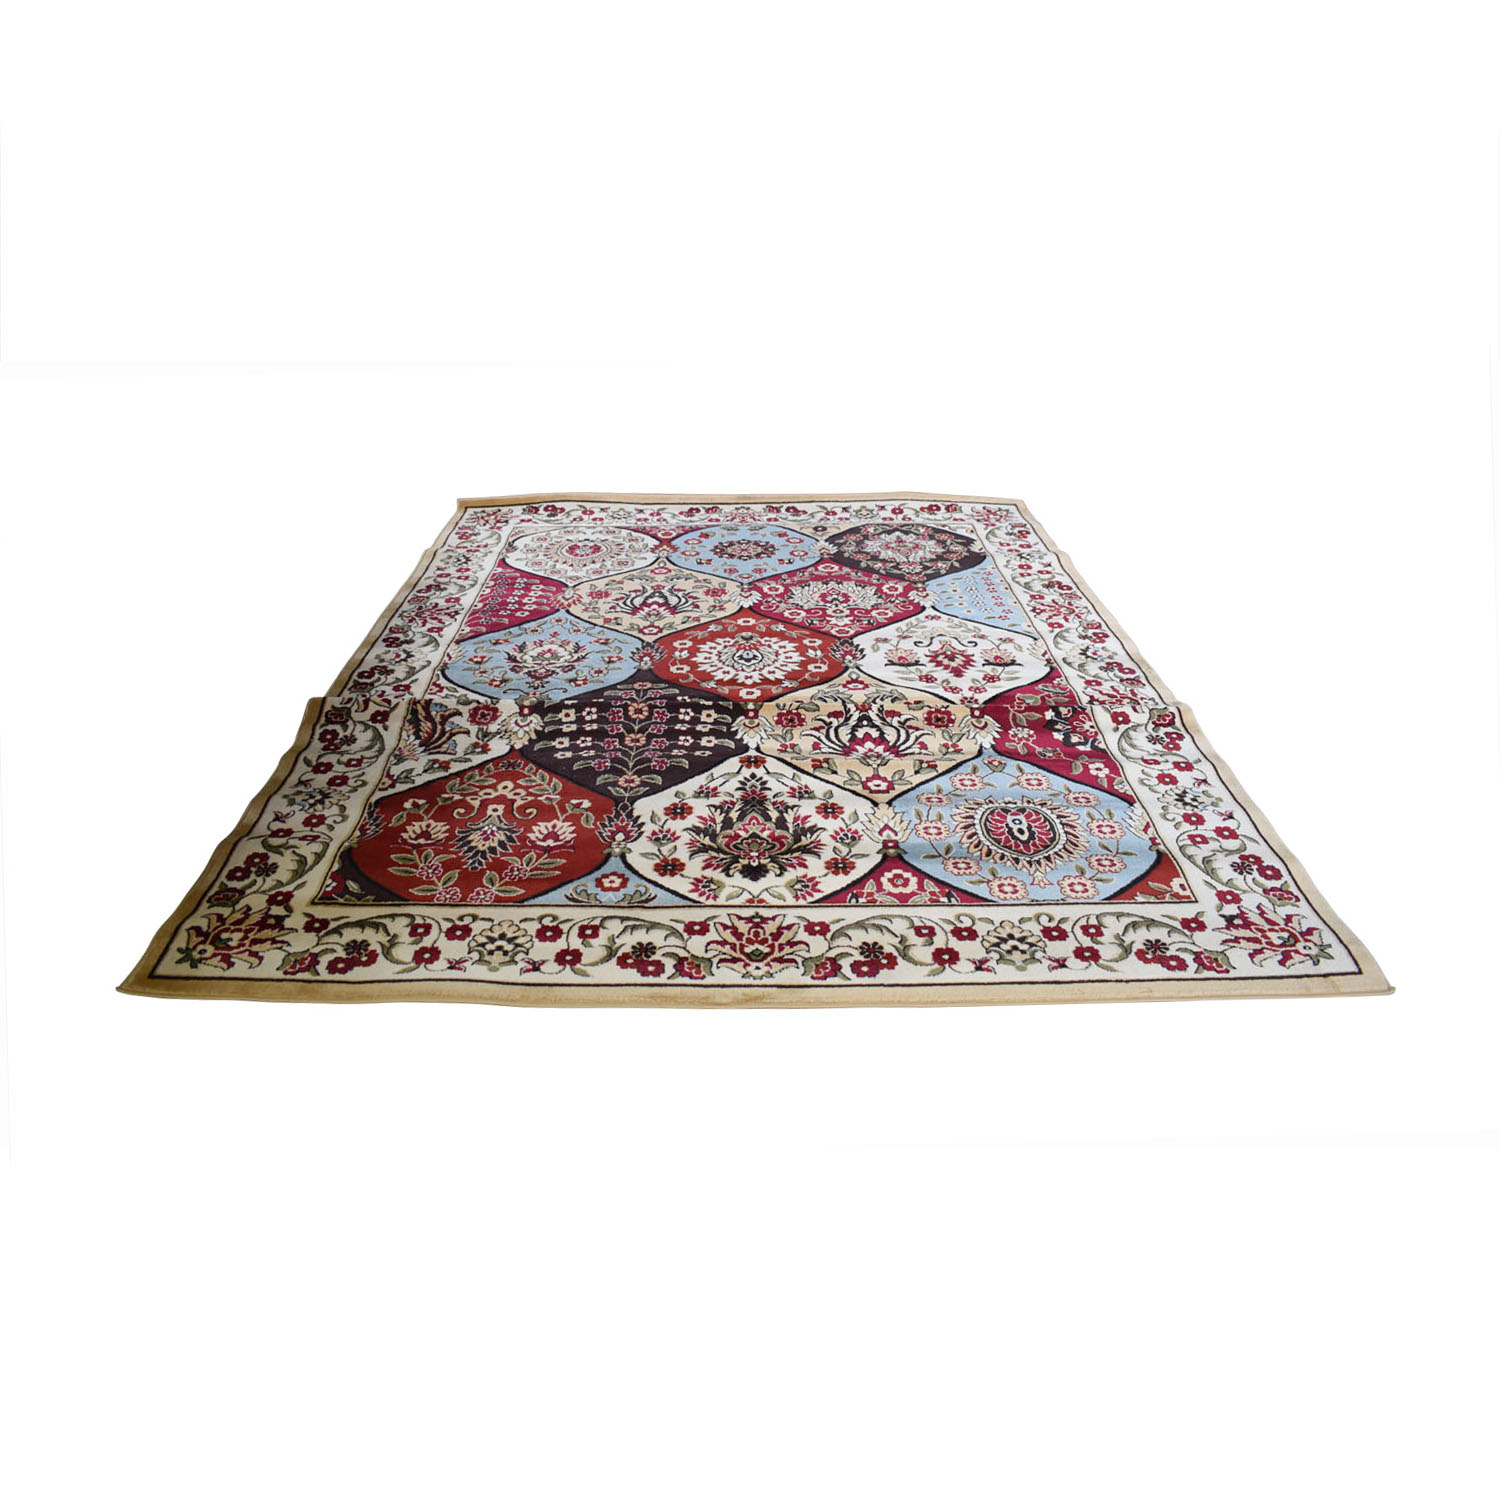 Well Woven Well Woven Barclay Wentworth Ivory Panel Rug price